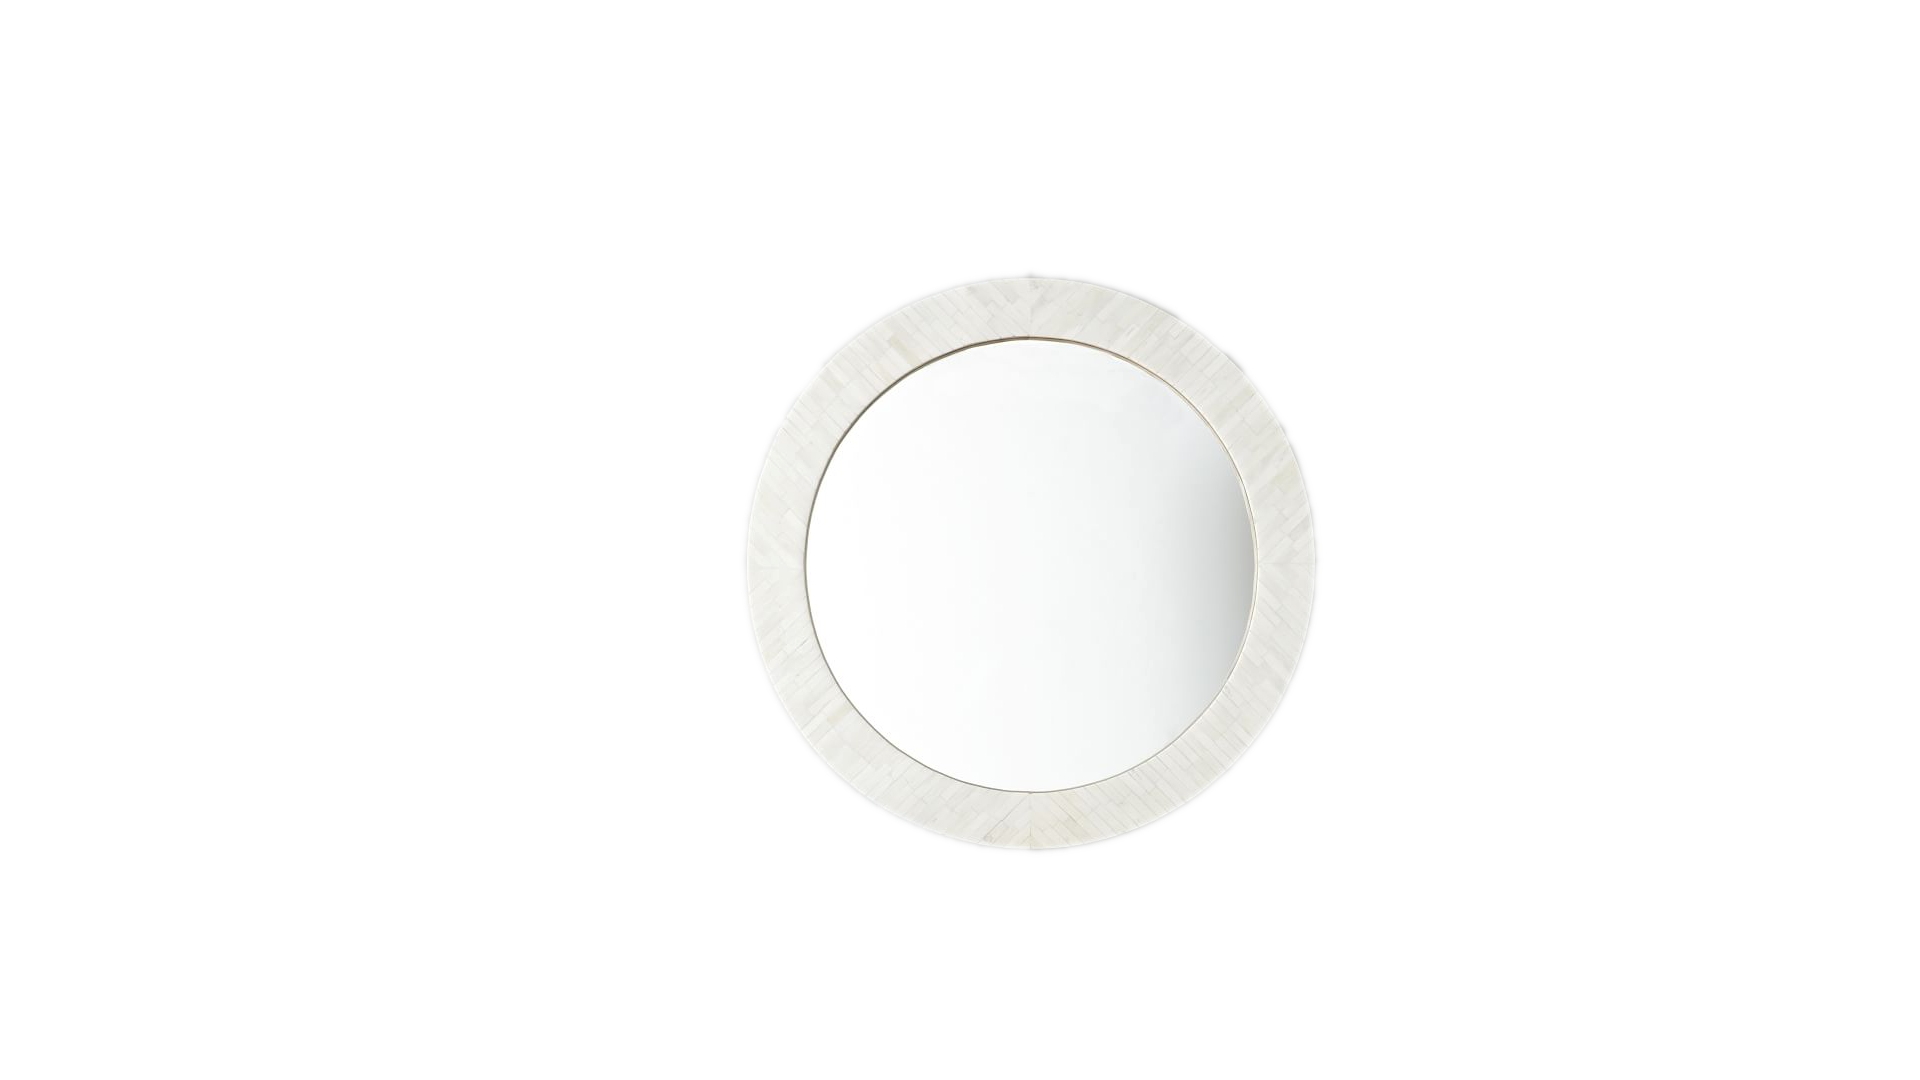 "West Elm Parson Mirror-Hand Crafted<br /> <br /> 30""diam. x 2""d.<br /> Solid wood frame.<br /> Hand-inlaid bone tile.<br /> Mirrored glass.<br /> Each mirror is one of a kind.<br /> Includes snap screw and anchor for wall mounting."